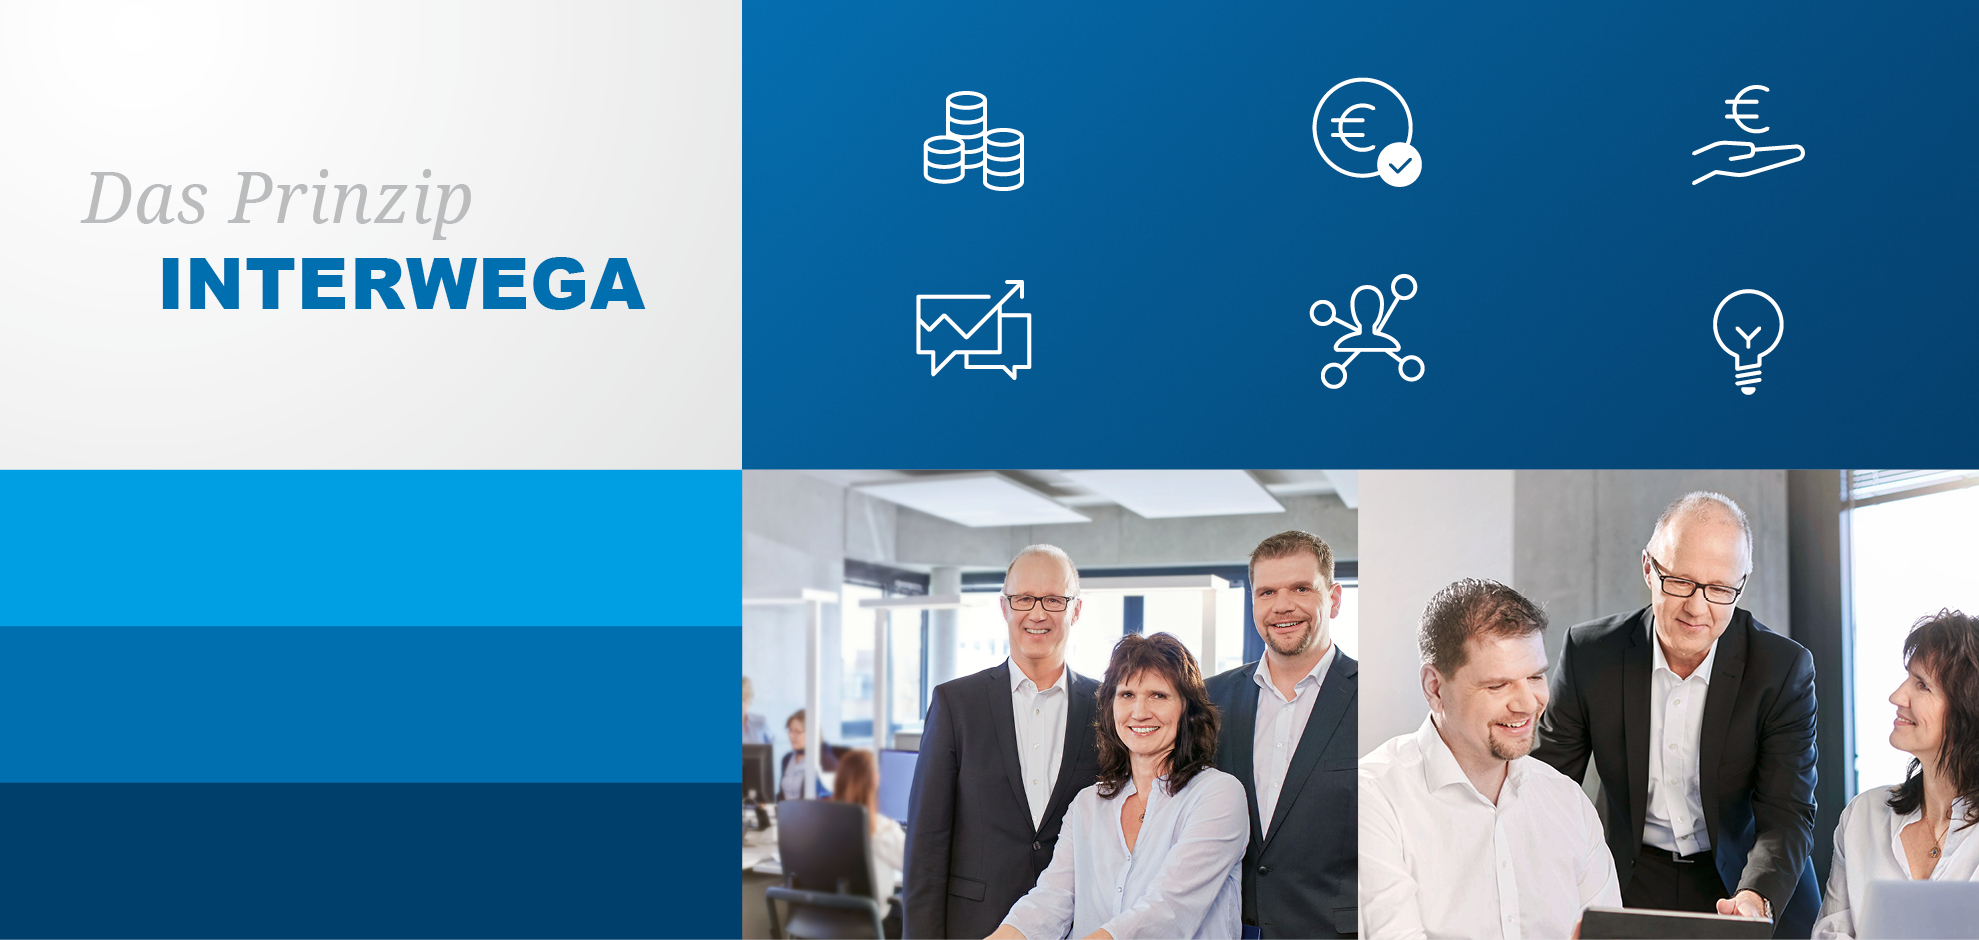 Dialogkampagne | Case Study Interwega | Corporate Design